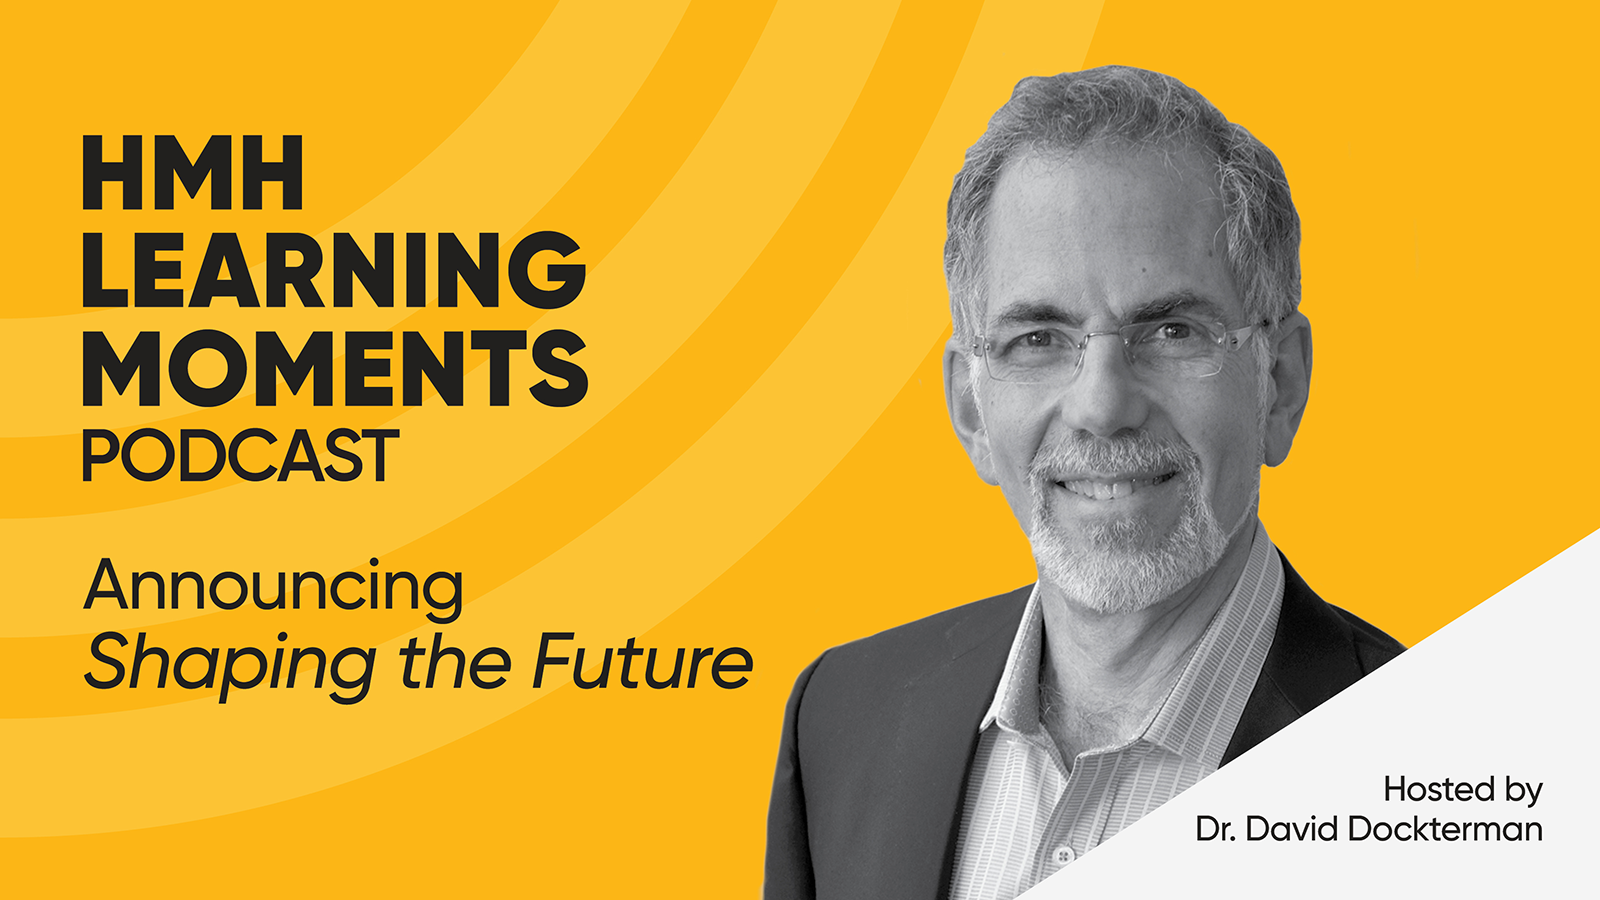 Announcing Shaping the FuturePodcast: An Irresistible Chance to Learn